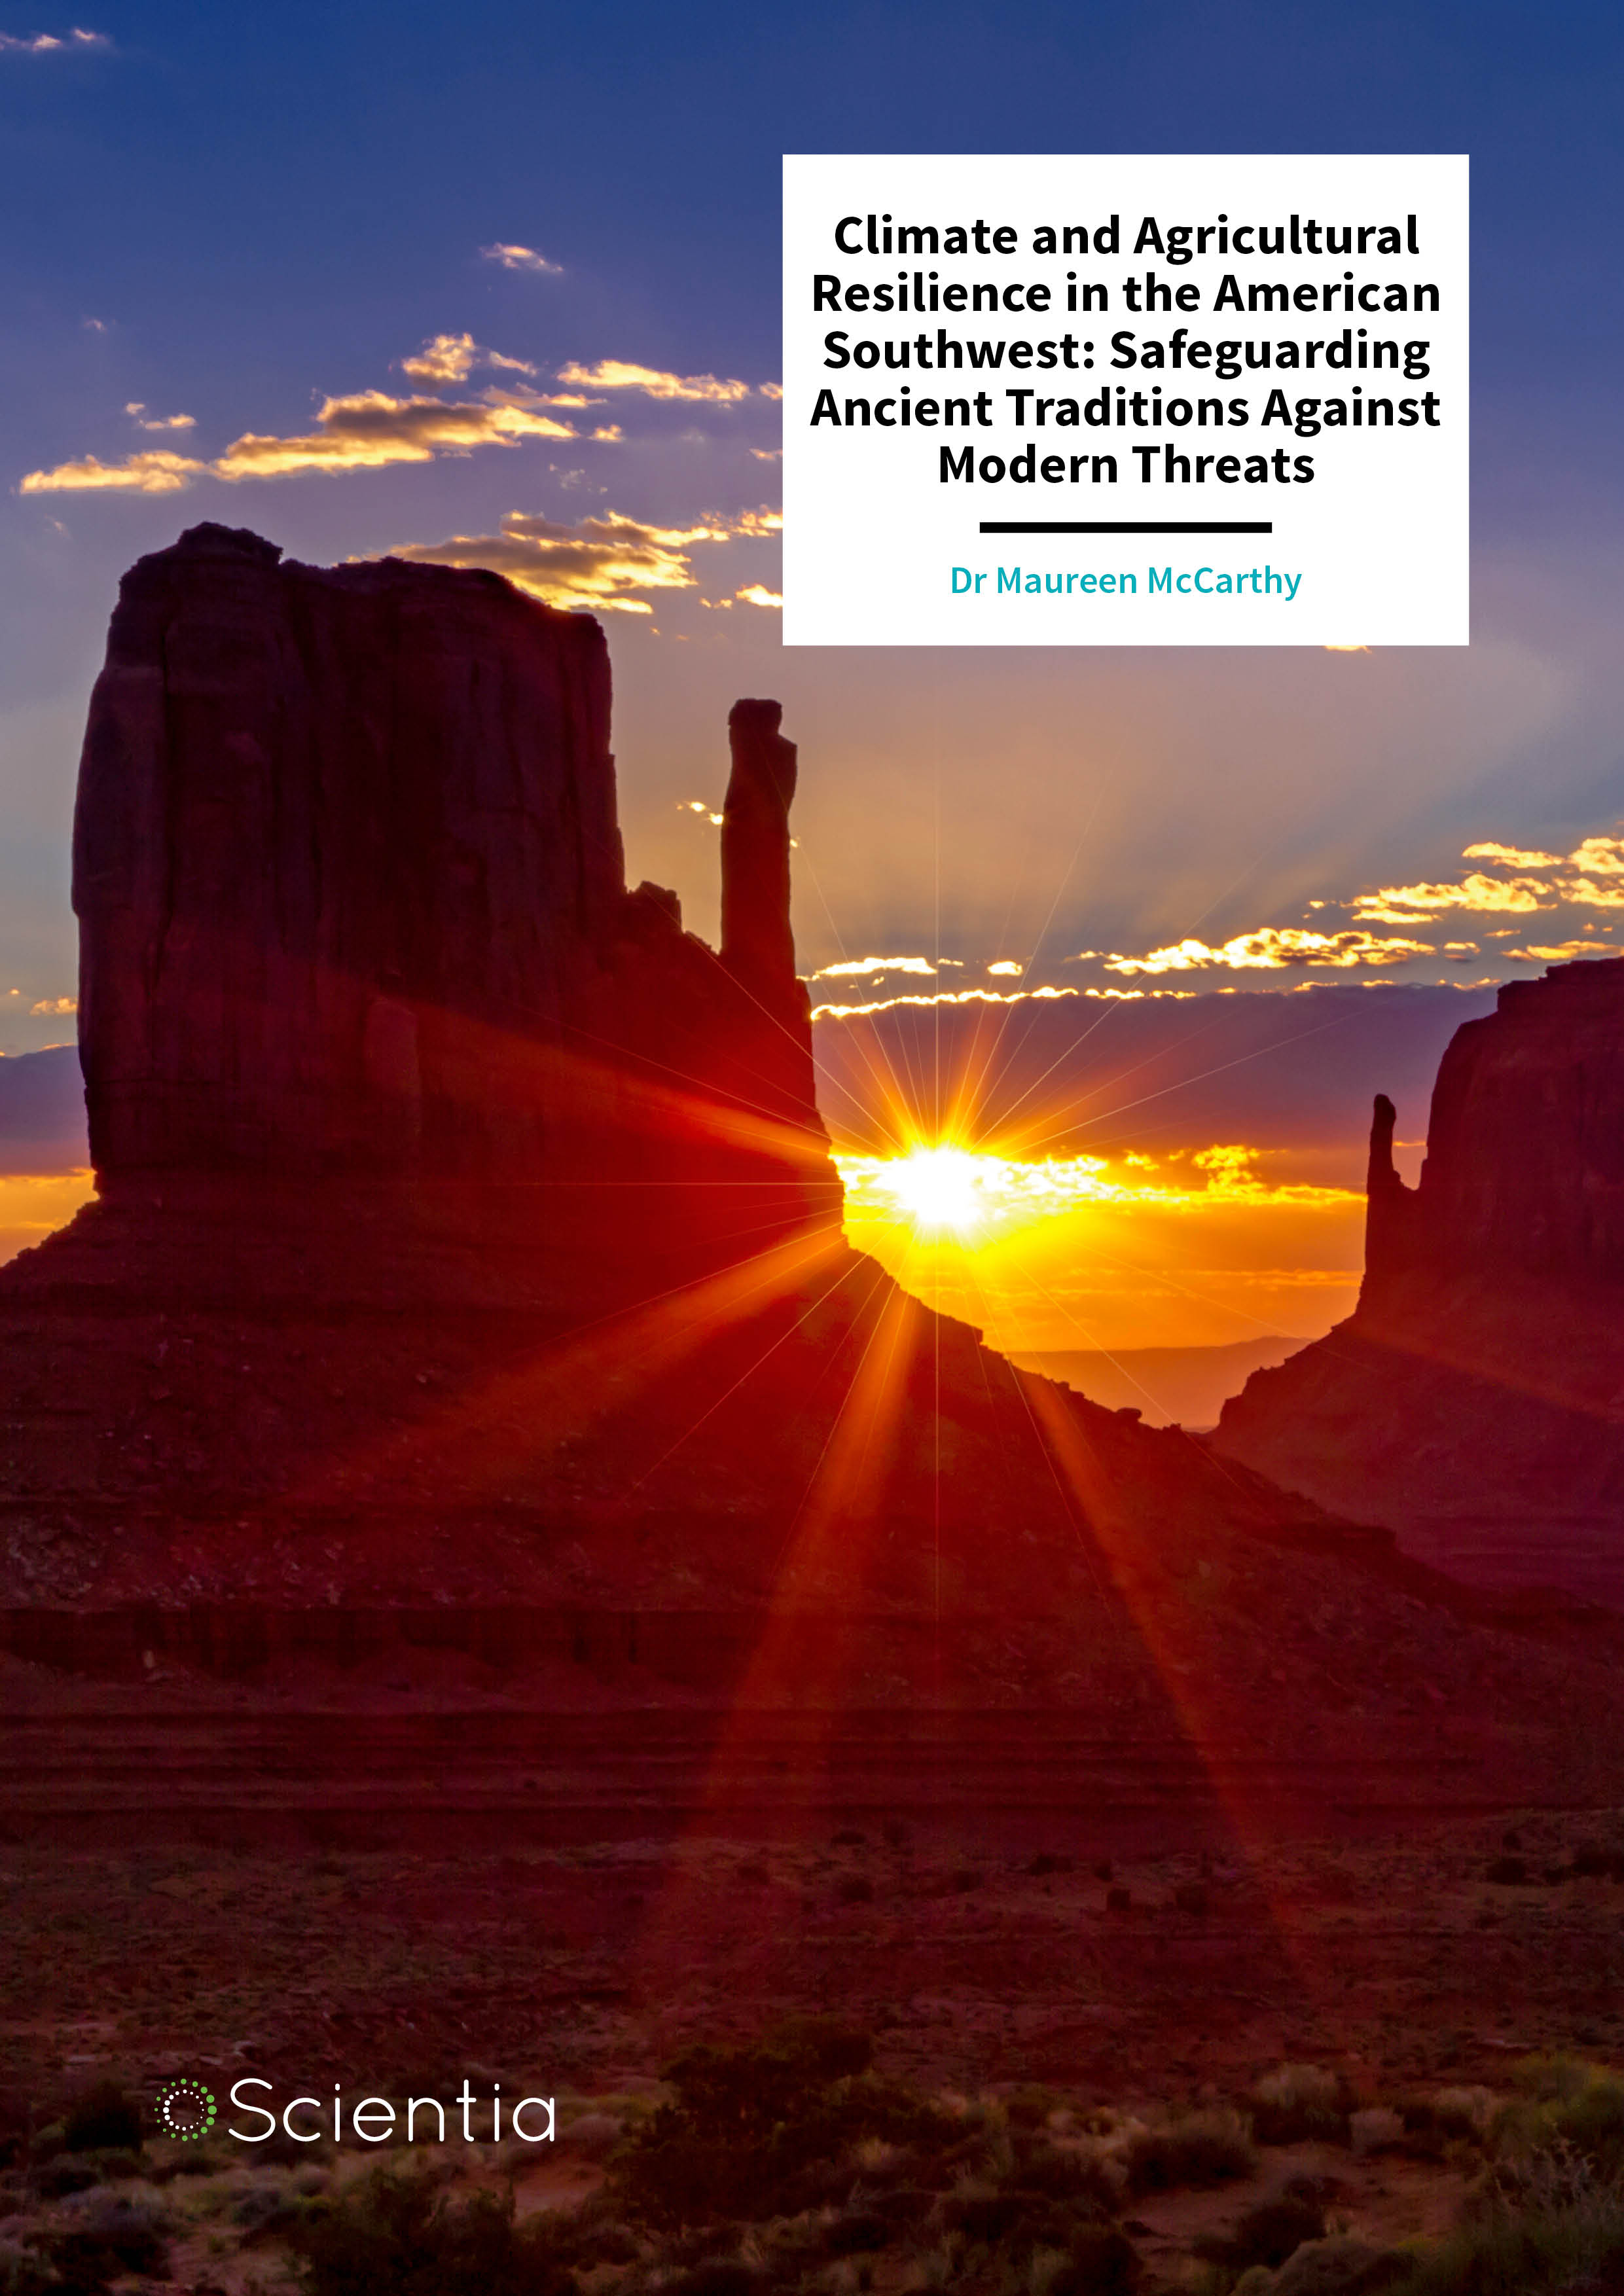 Dr Maureen McCarthy – Climate and Agricultural Resilience in the American Southwest: Safeguarding Ancient Traditions Against Modern Threats